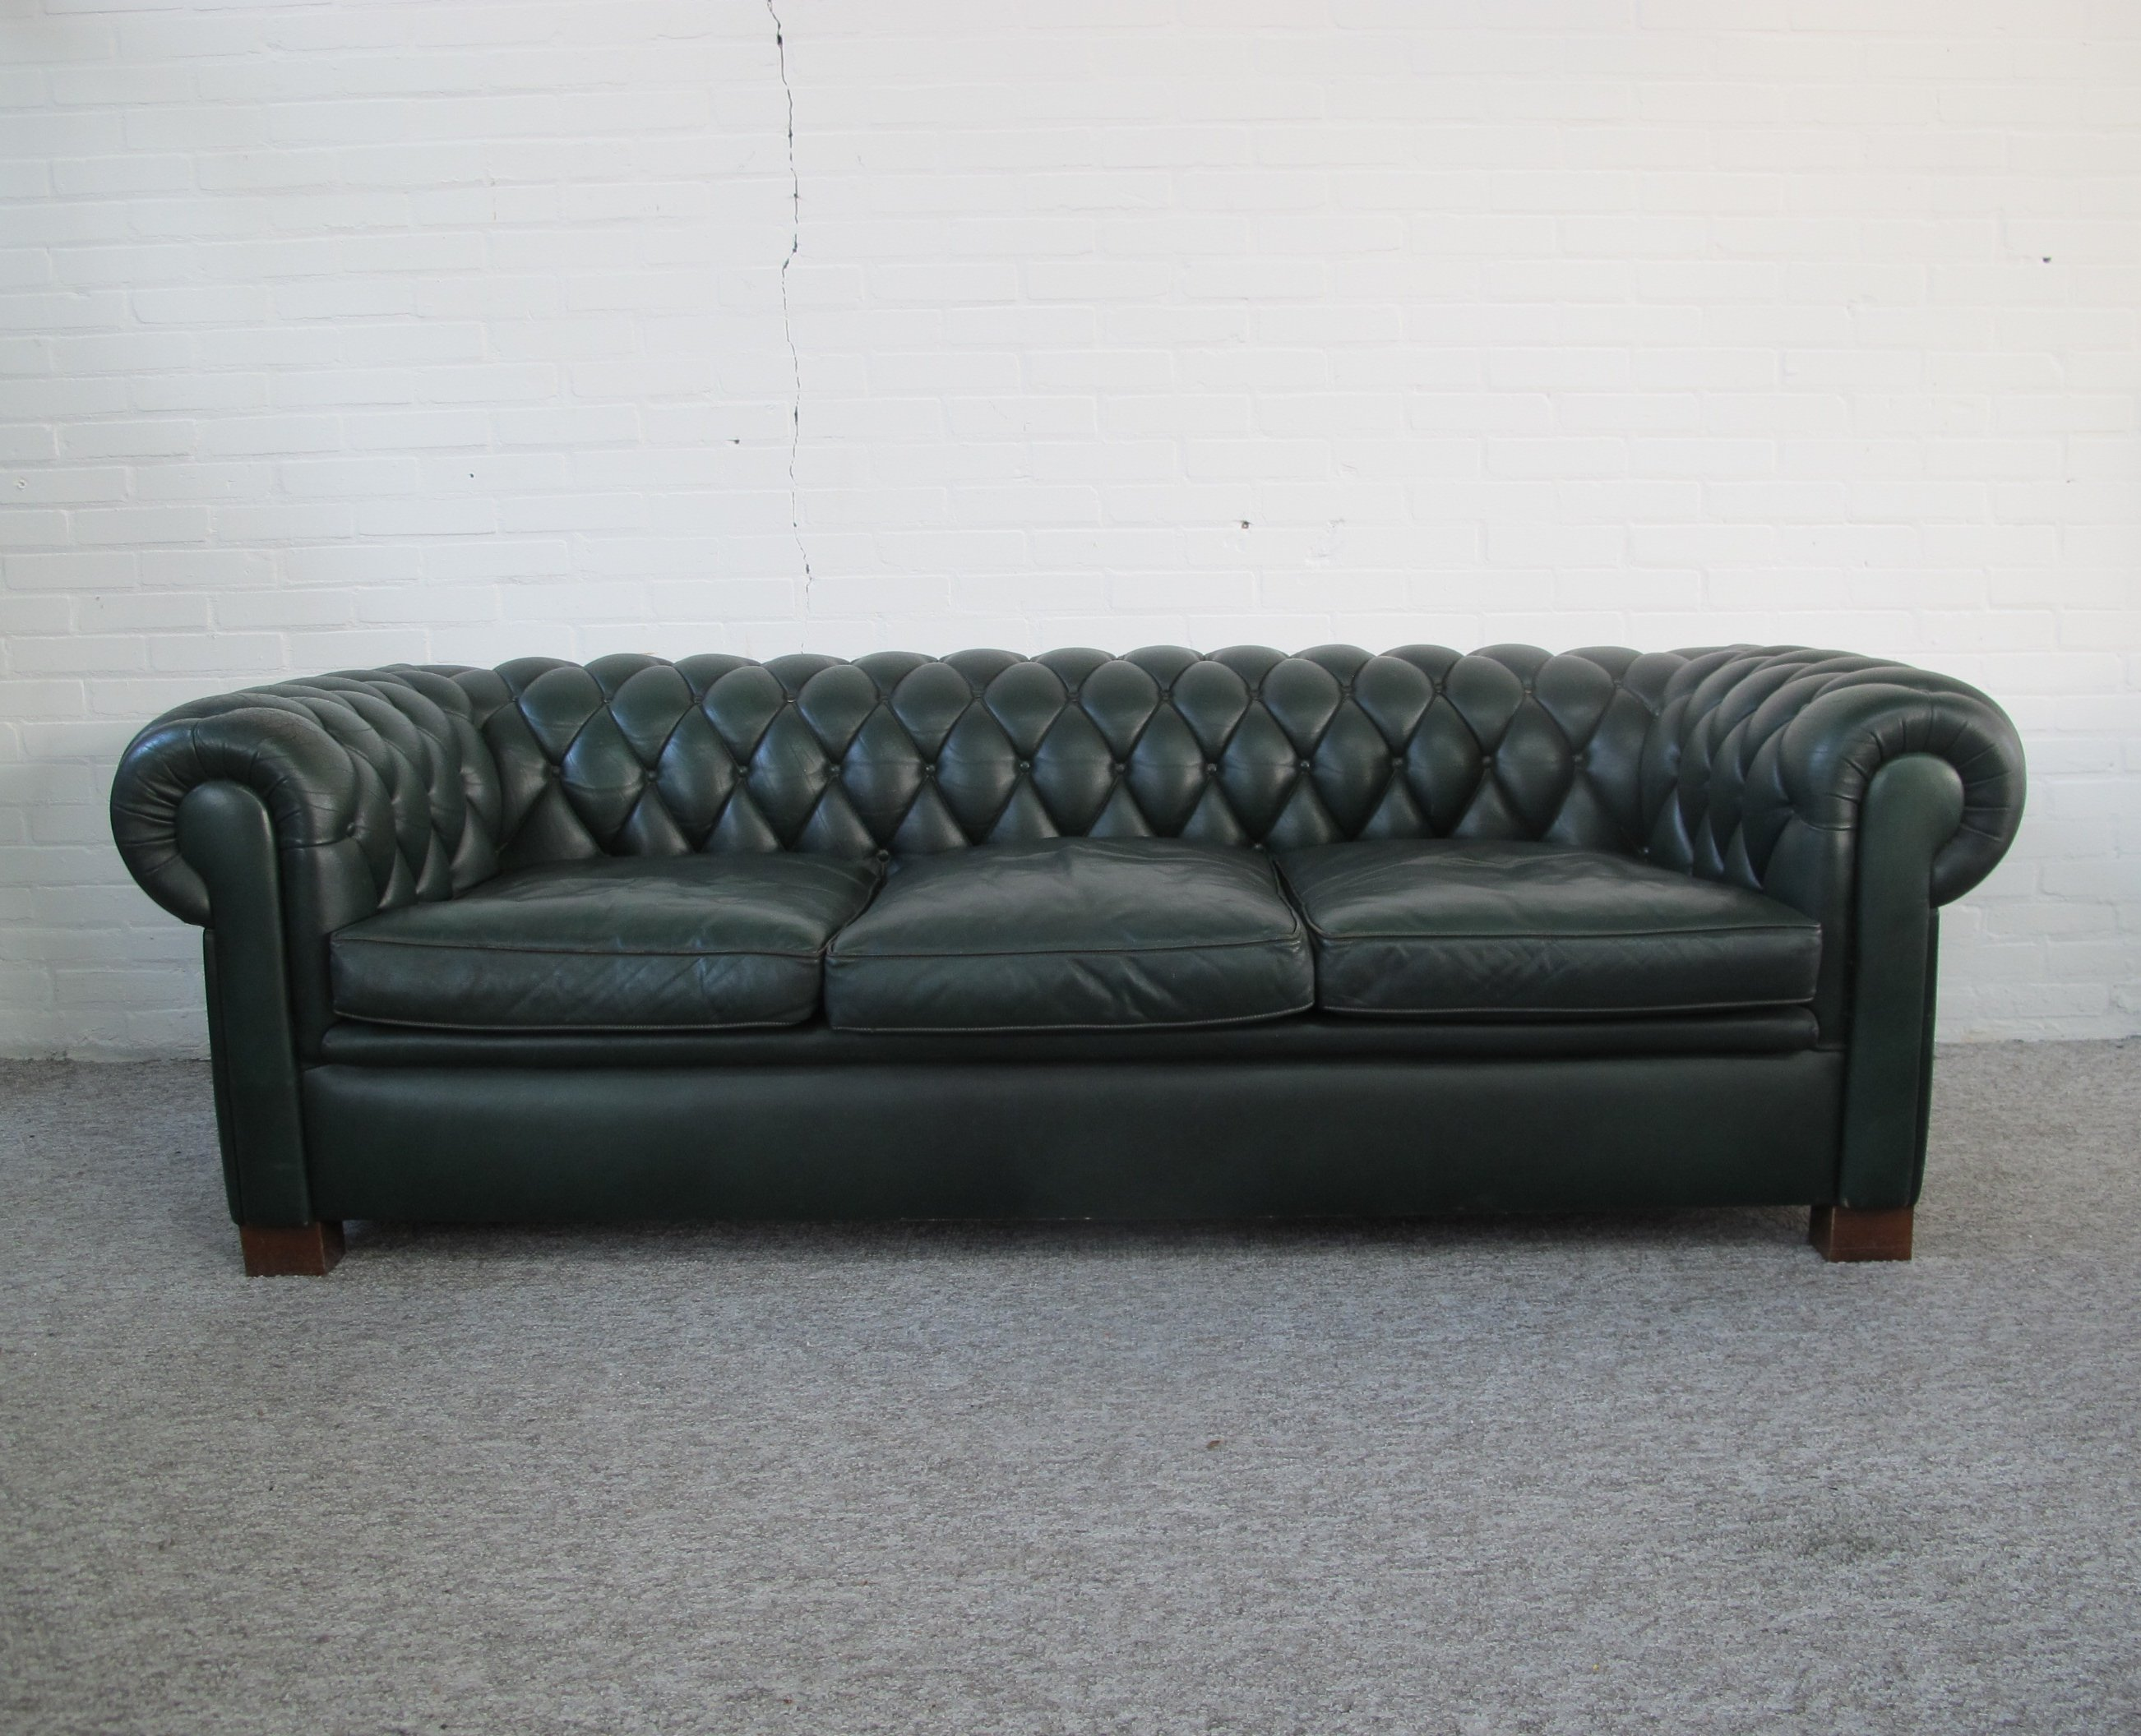 Original English Chesterfield Sofa In Green Leather, 1970s ...